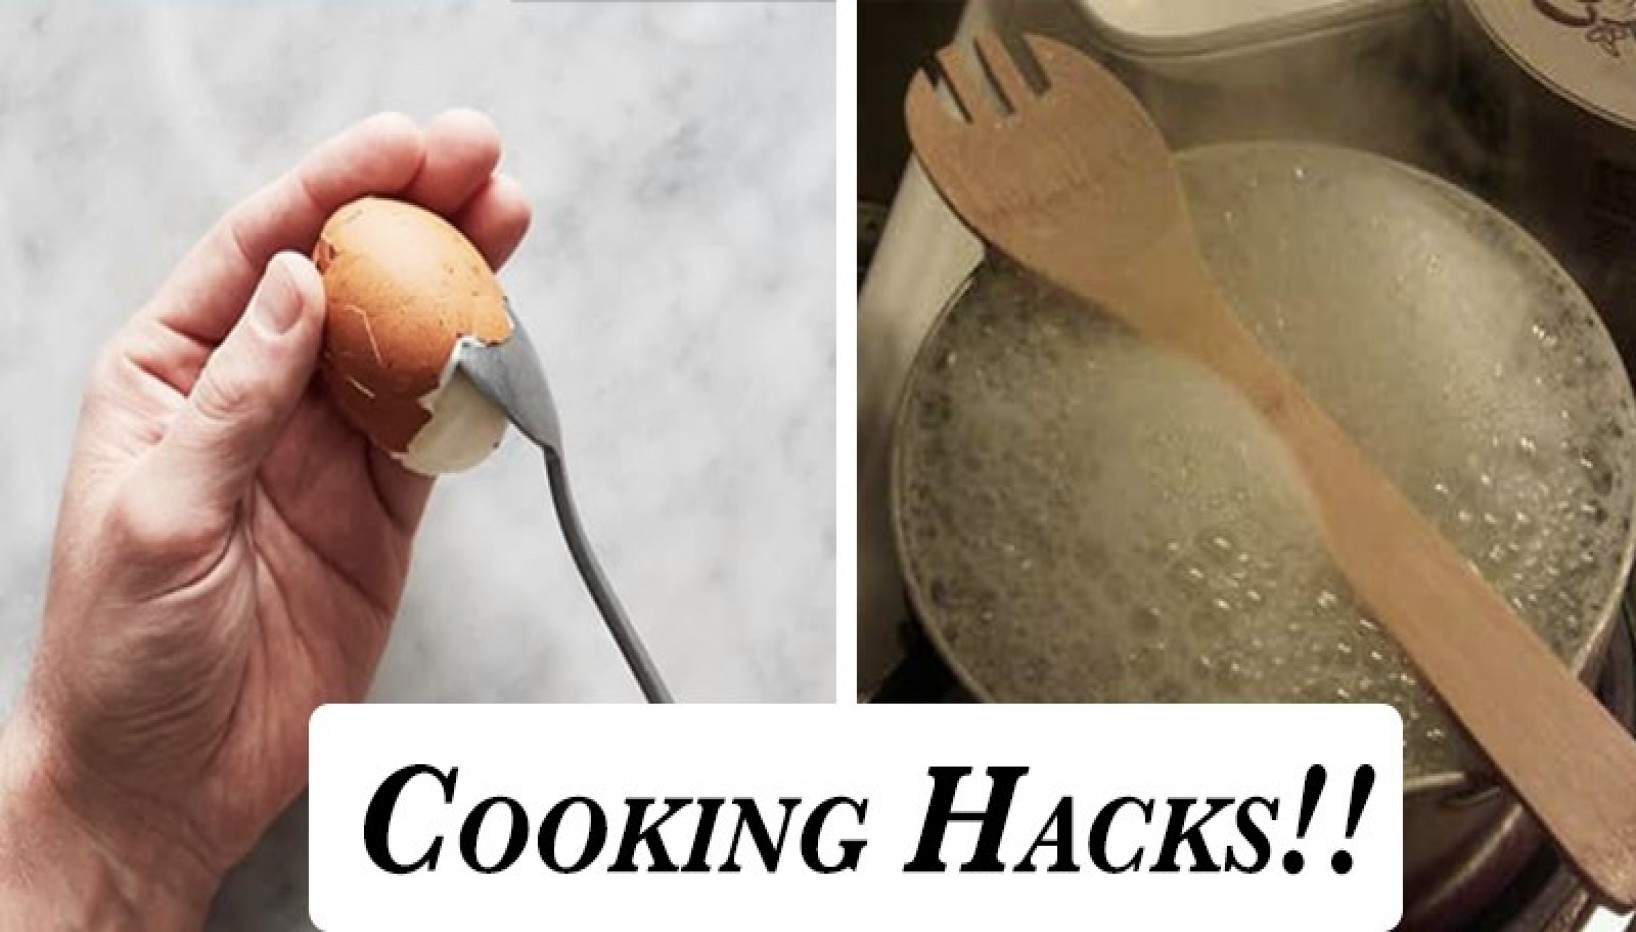 10 Basic Cooking Hacks For The Nepali Kitchen